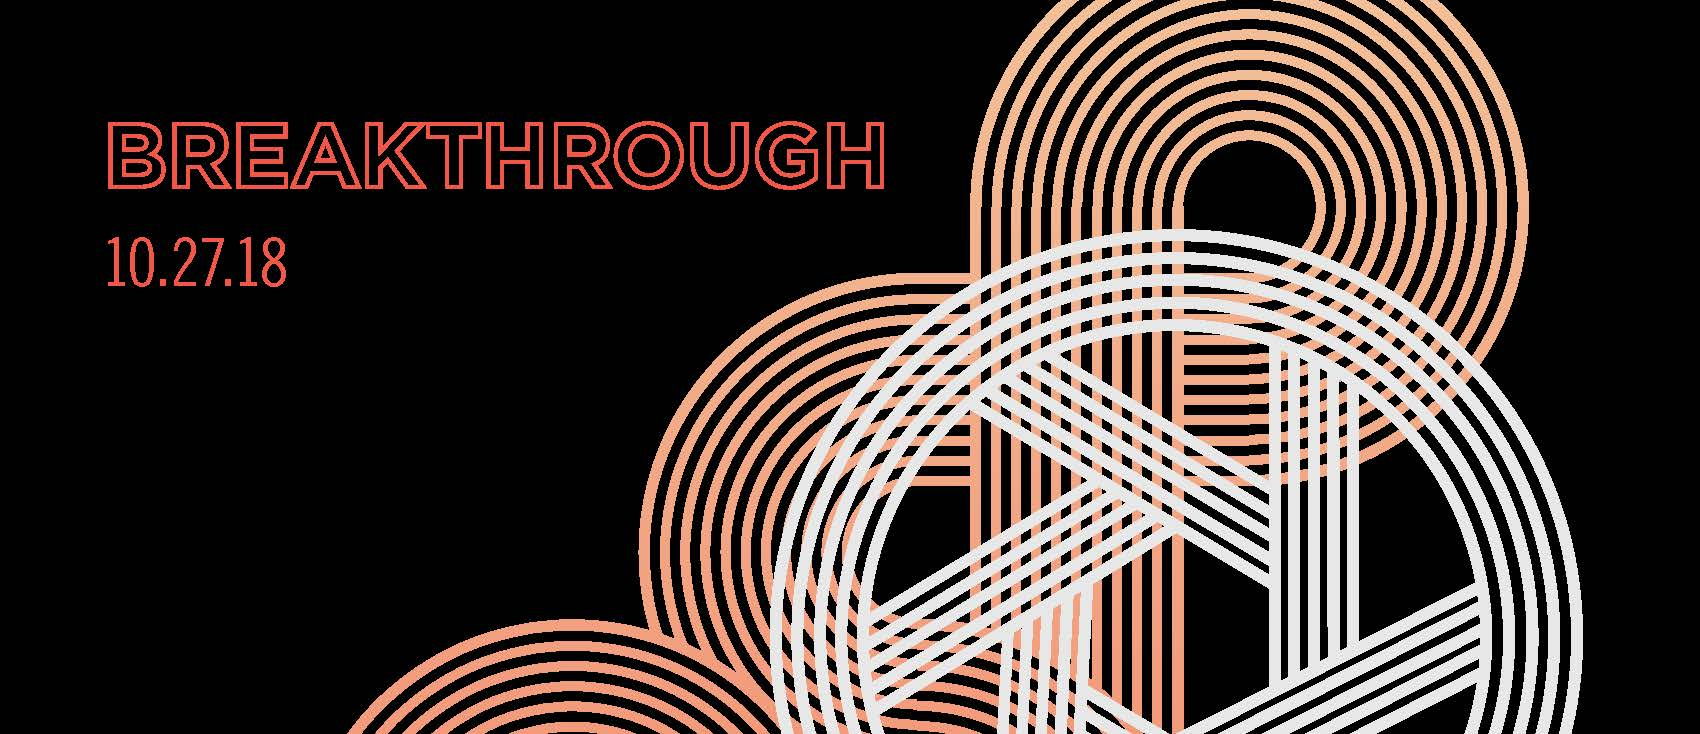 Breakthrough2018_Banners 1.jpg